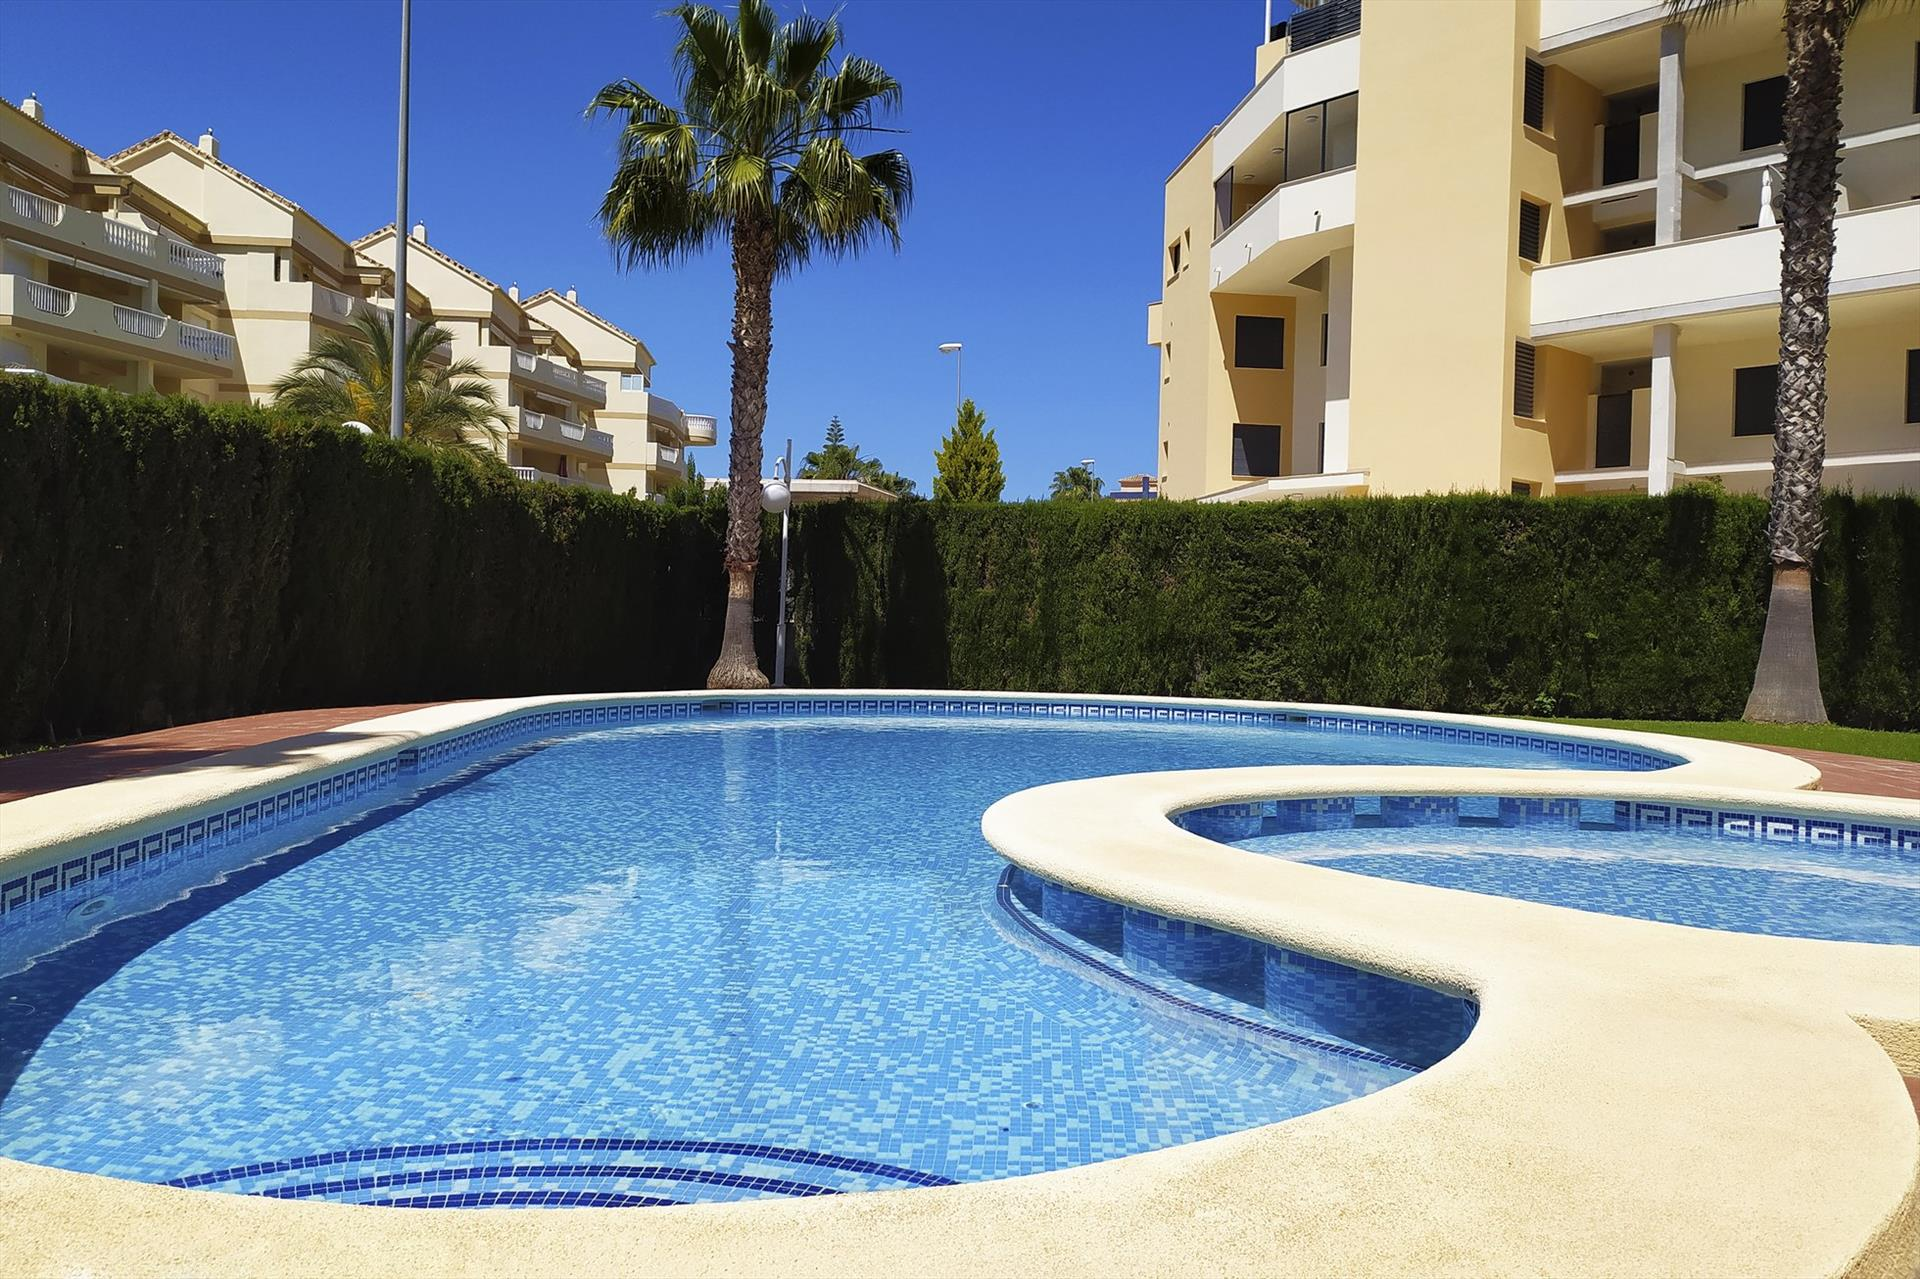 Daly Sardina Les Marines AP1104, Classic and comfortable apartment  with communal pool in Denia, on the Costa Blanca, Spain for 3 persons.....